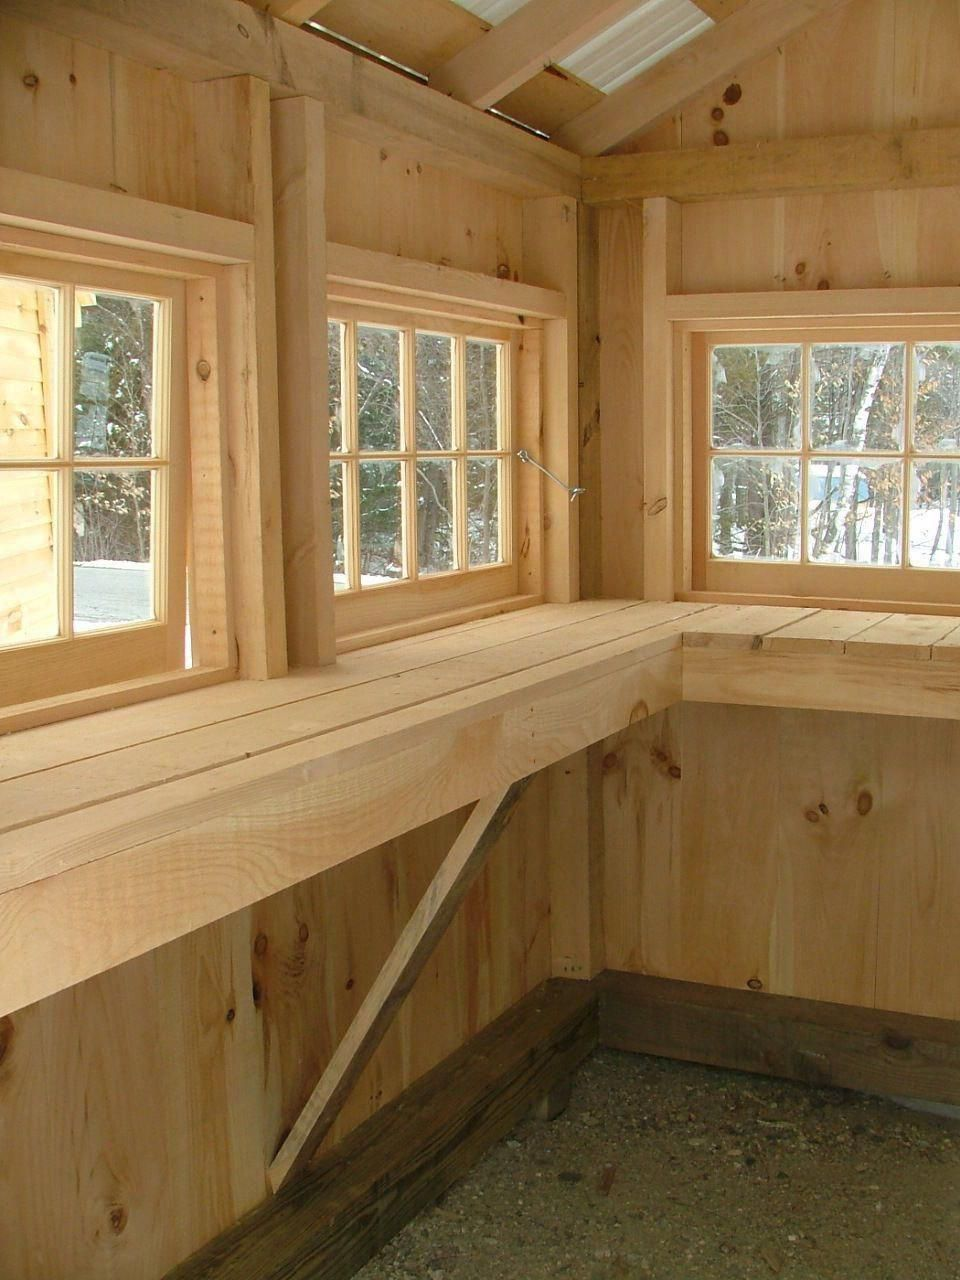 Garden Shed Interior Counter Work Space Hinged Windows